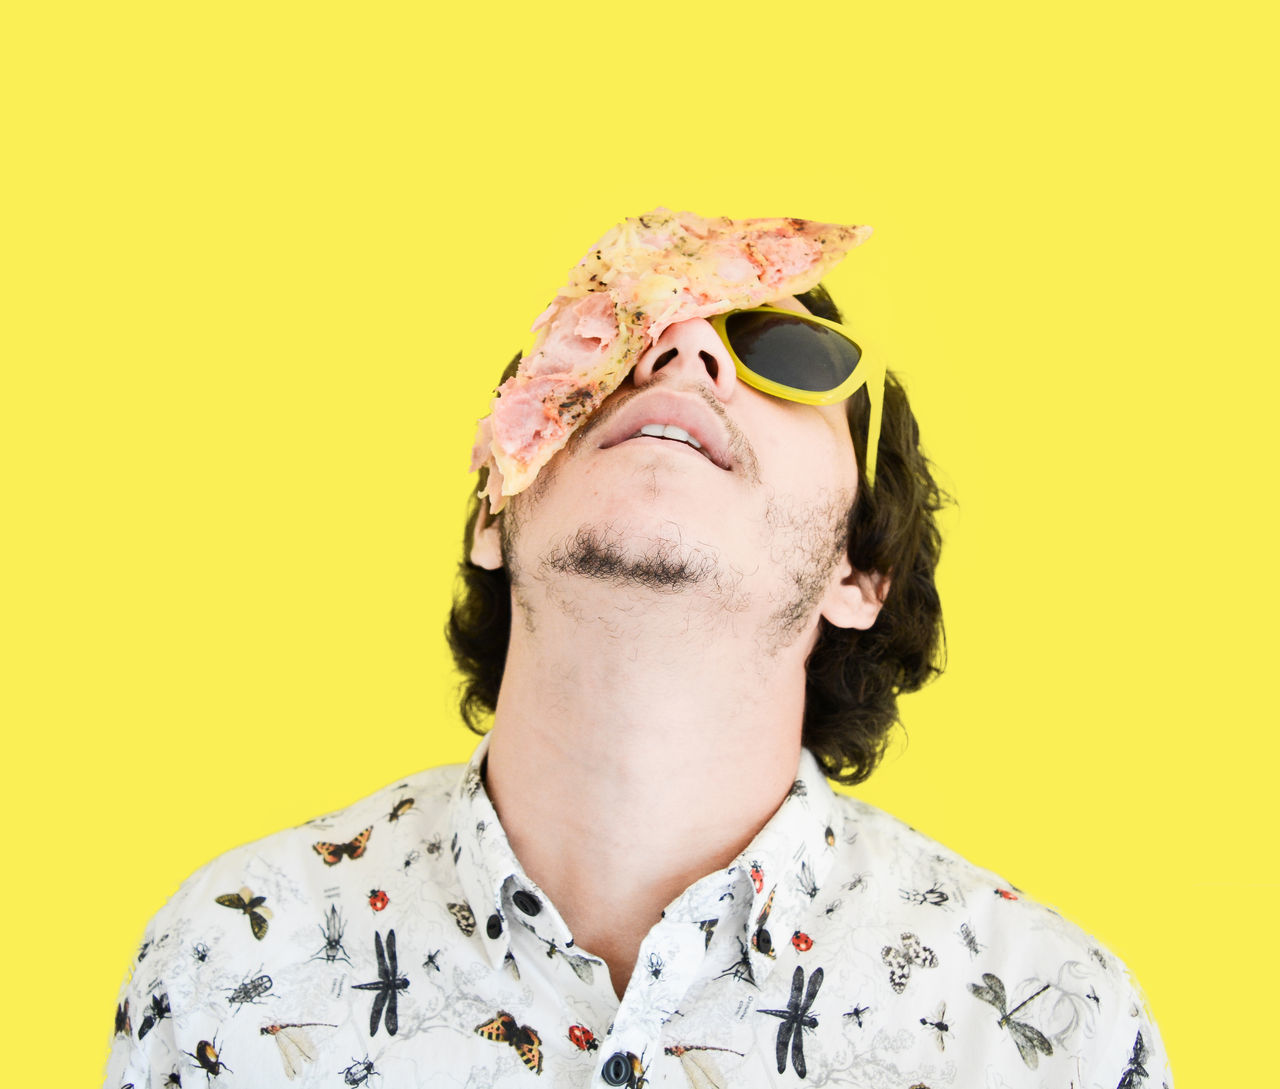 Young Man With Pizza On Face While Standing Against Yellow Background